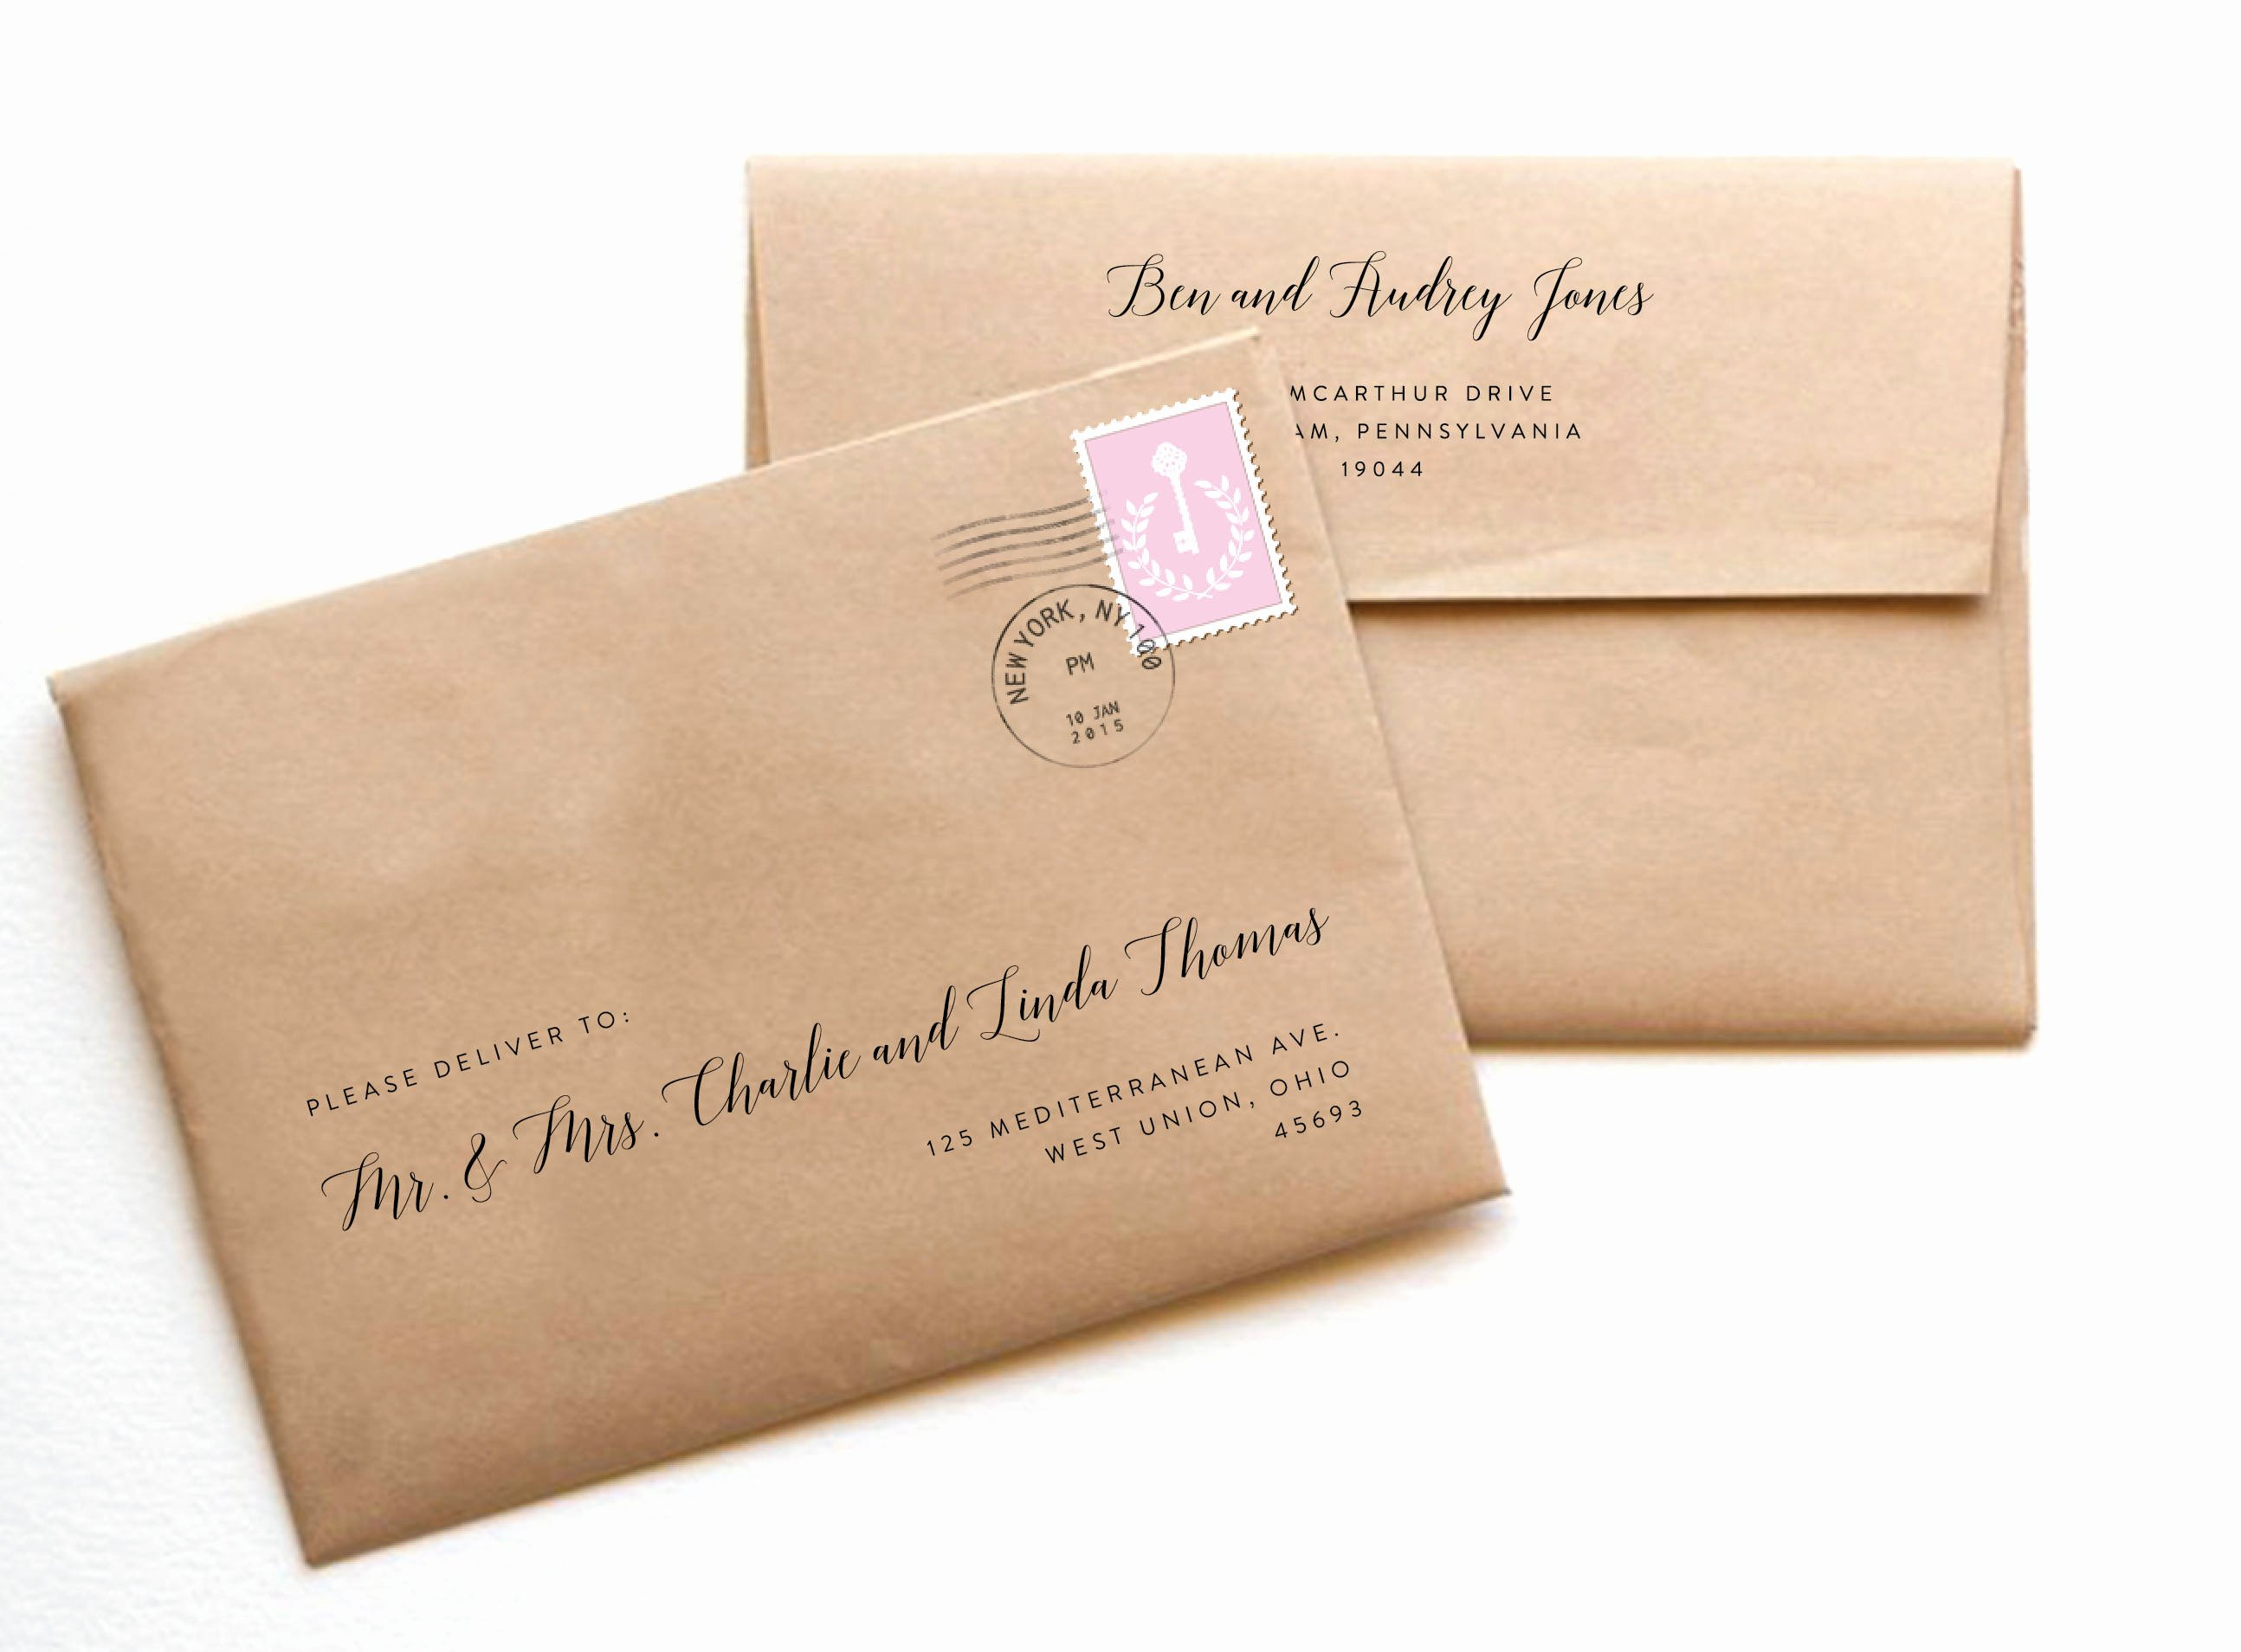 Wedding Envelope Address Template Unique Wedding Envelopes Envelope Template Printable Envelope